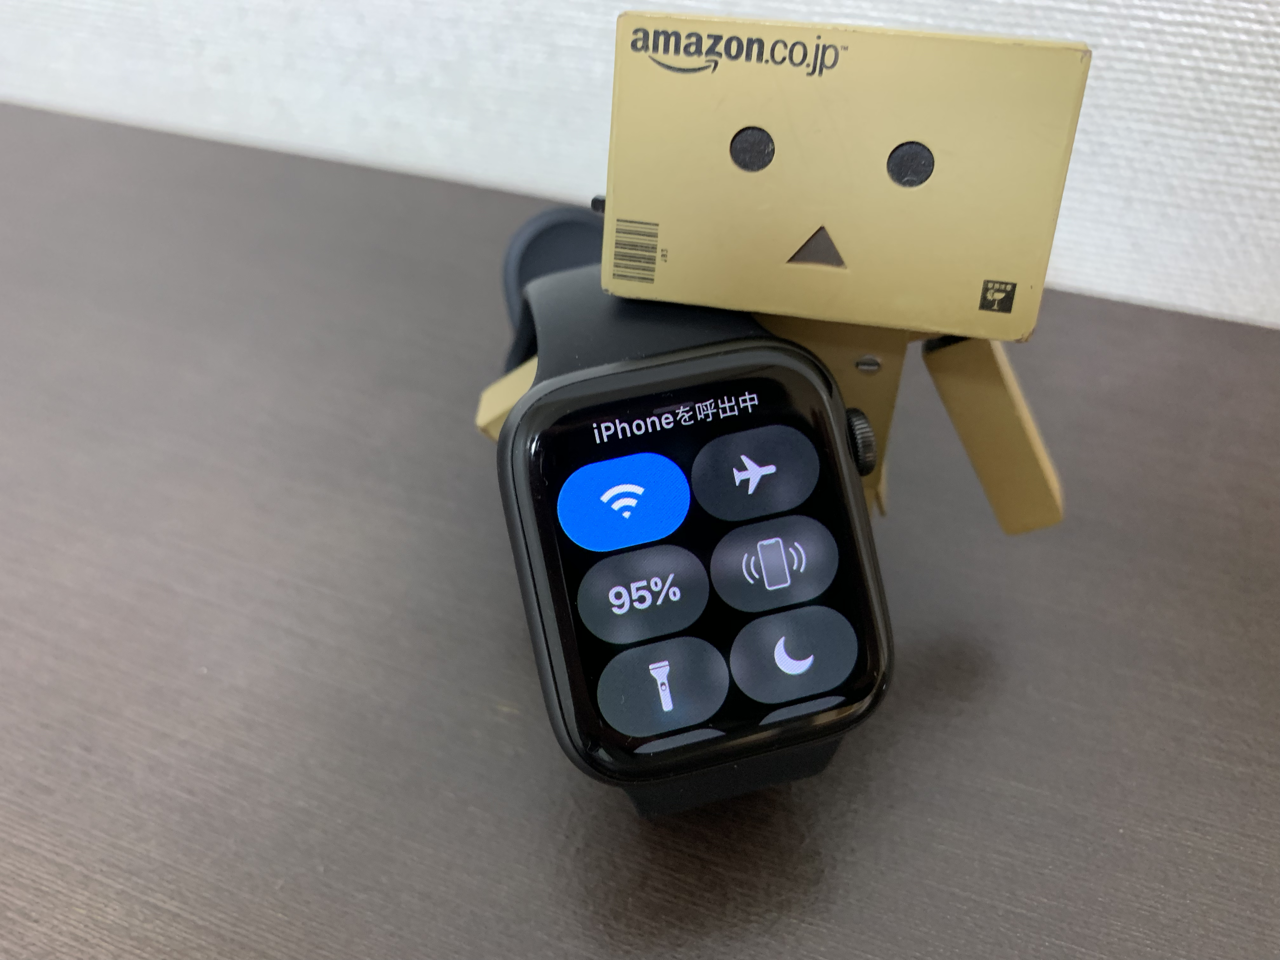 Apple Watch iPhoneを呼び出す